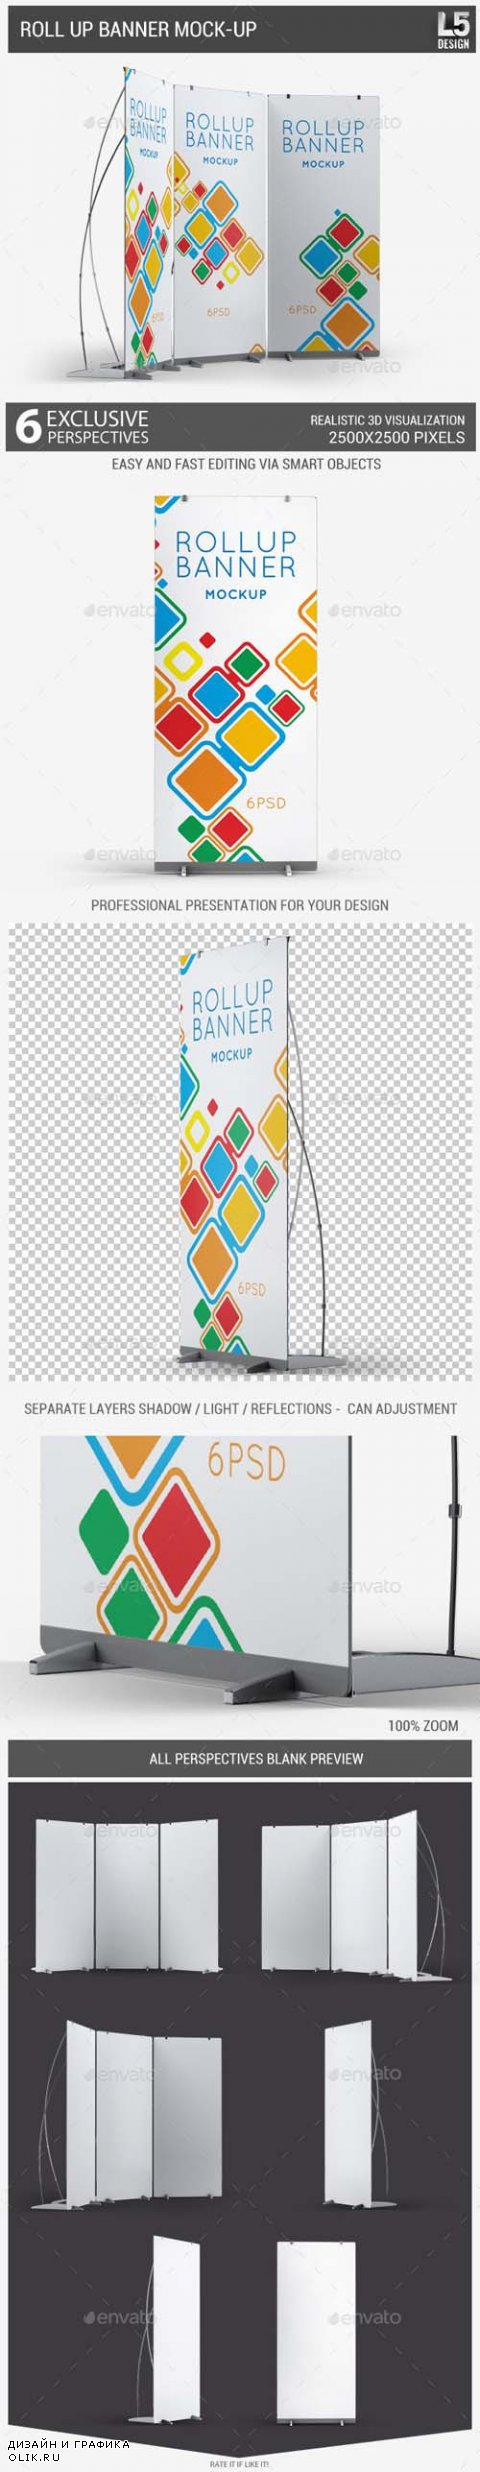 Roll Up Banner Mock-Up 12965924